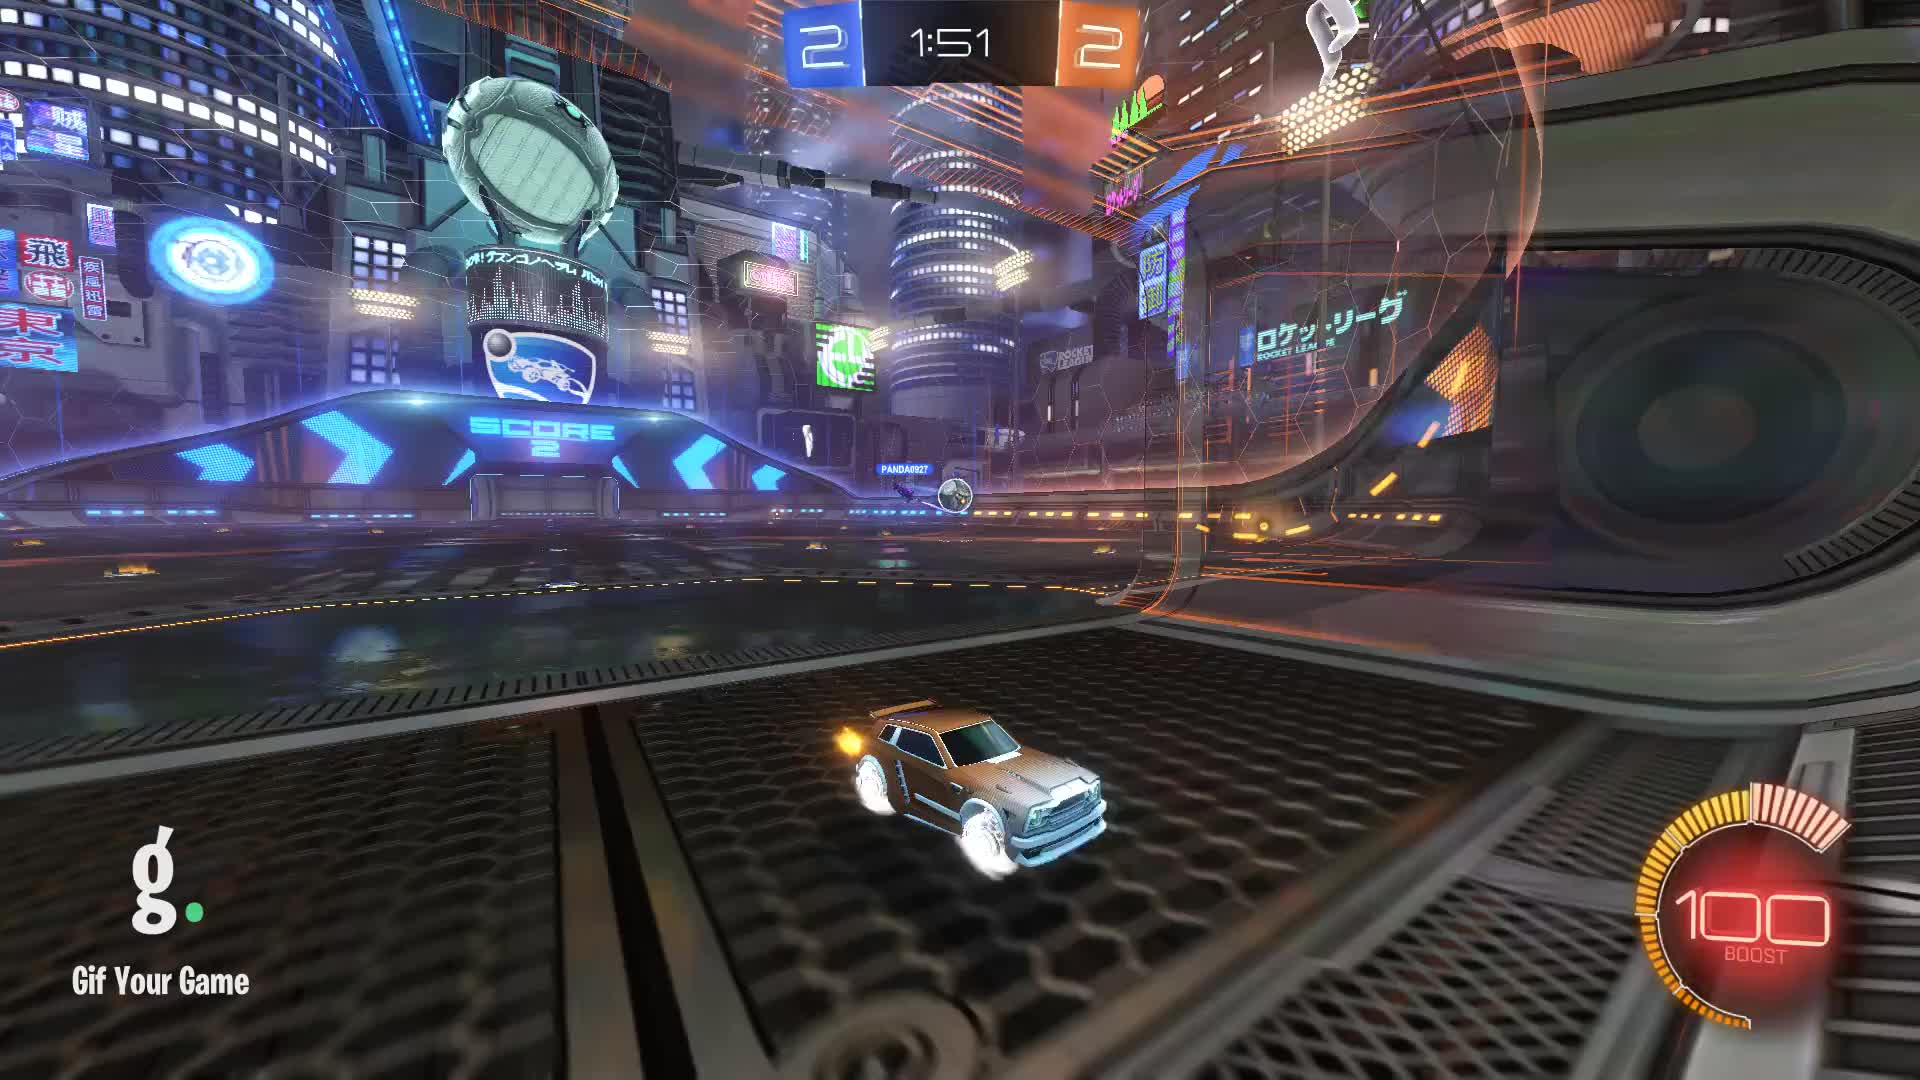 Gif Your Game, GifYourGame, Goal, Rocket League, RocketLeague, SchmashinPrunes, Goal 5: SchmashinPrunes GIFs